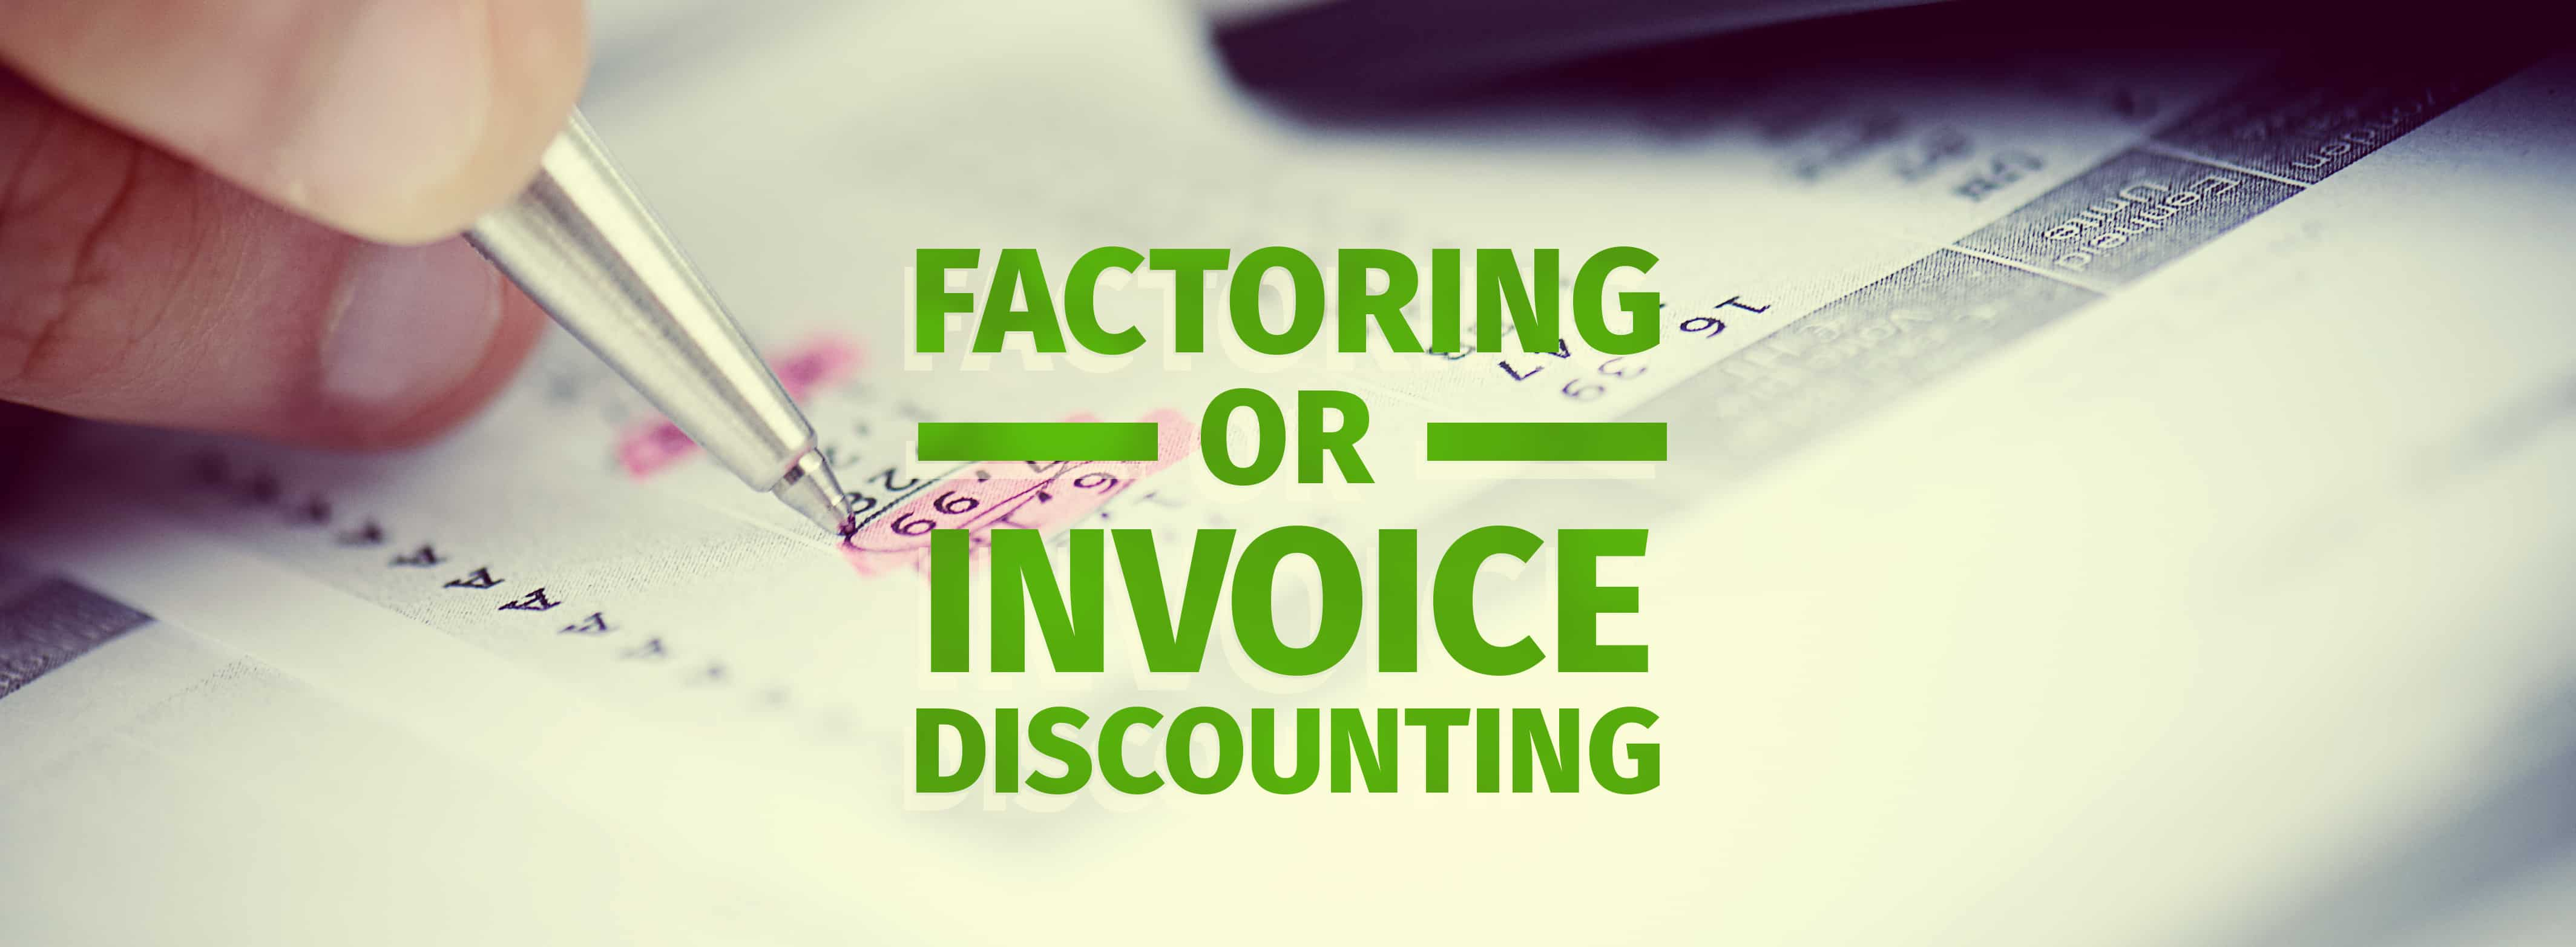 Invoice Discounting vs  Factoring Invoice Discounting  What s the Difference